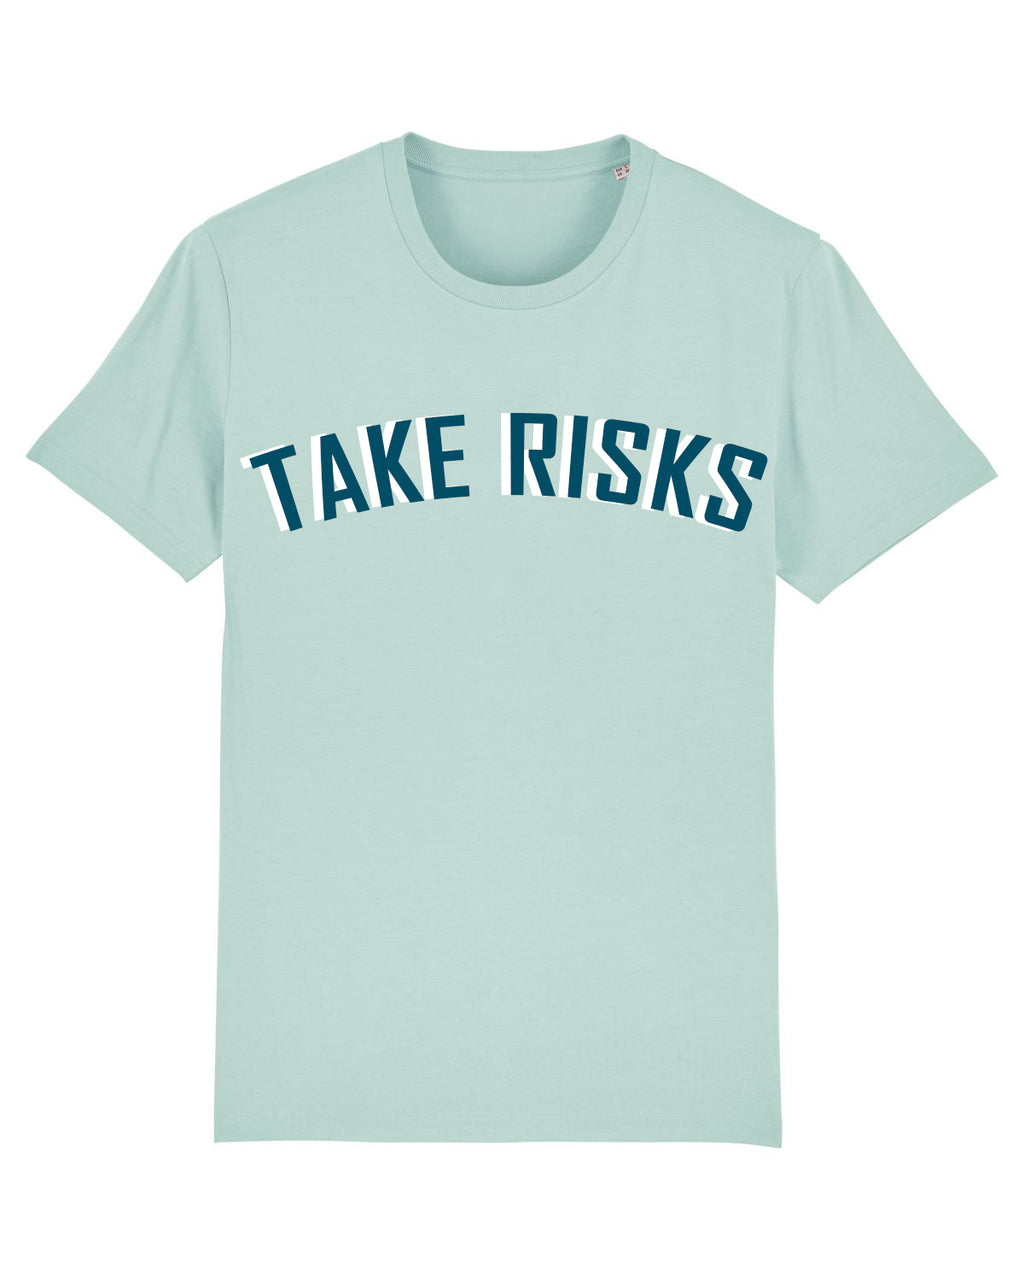 Take Risks Aqua/Azure Statement T-Shirt